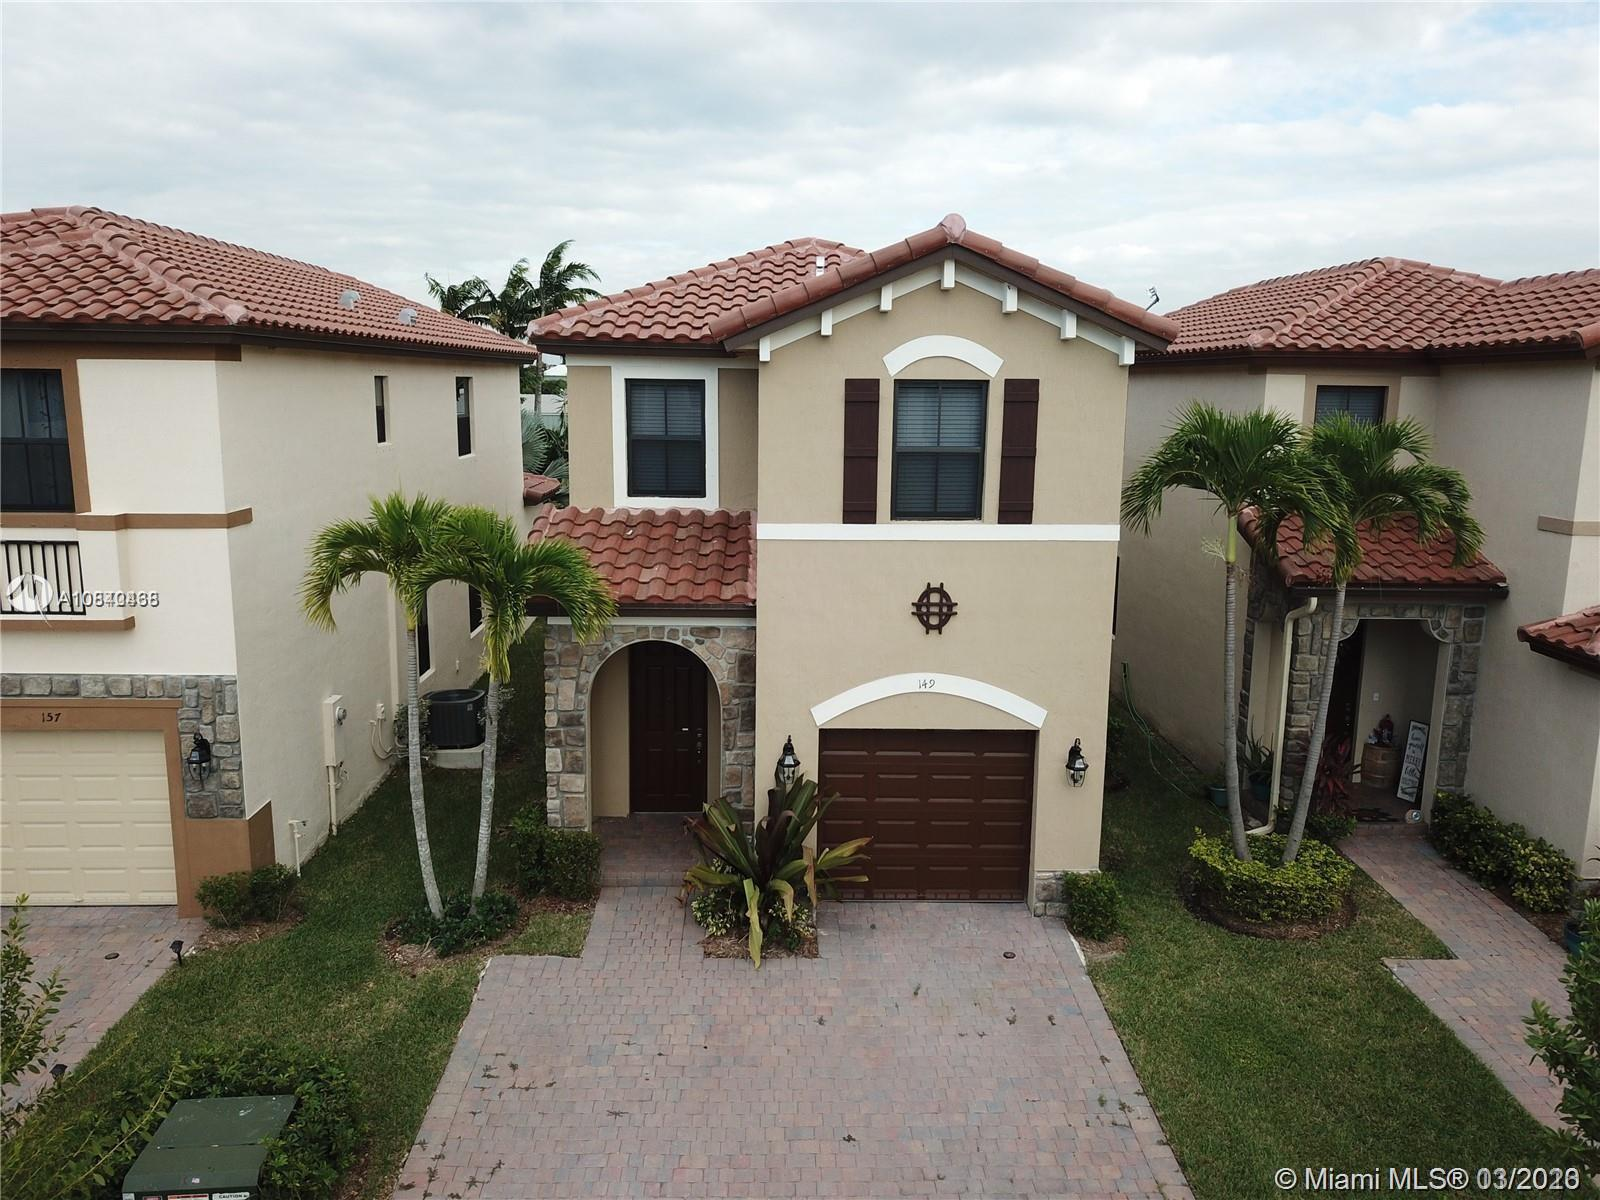 149 NE 37th Pl #149, Homestead, FL 33033 - Homestead, FL real estate listing